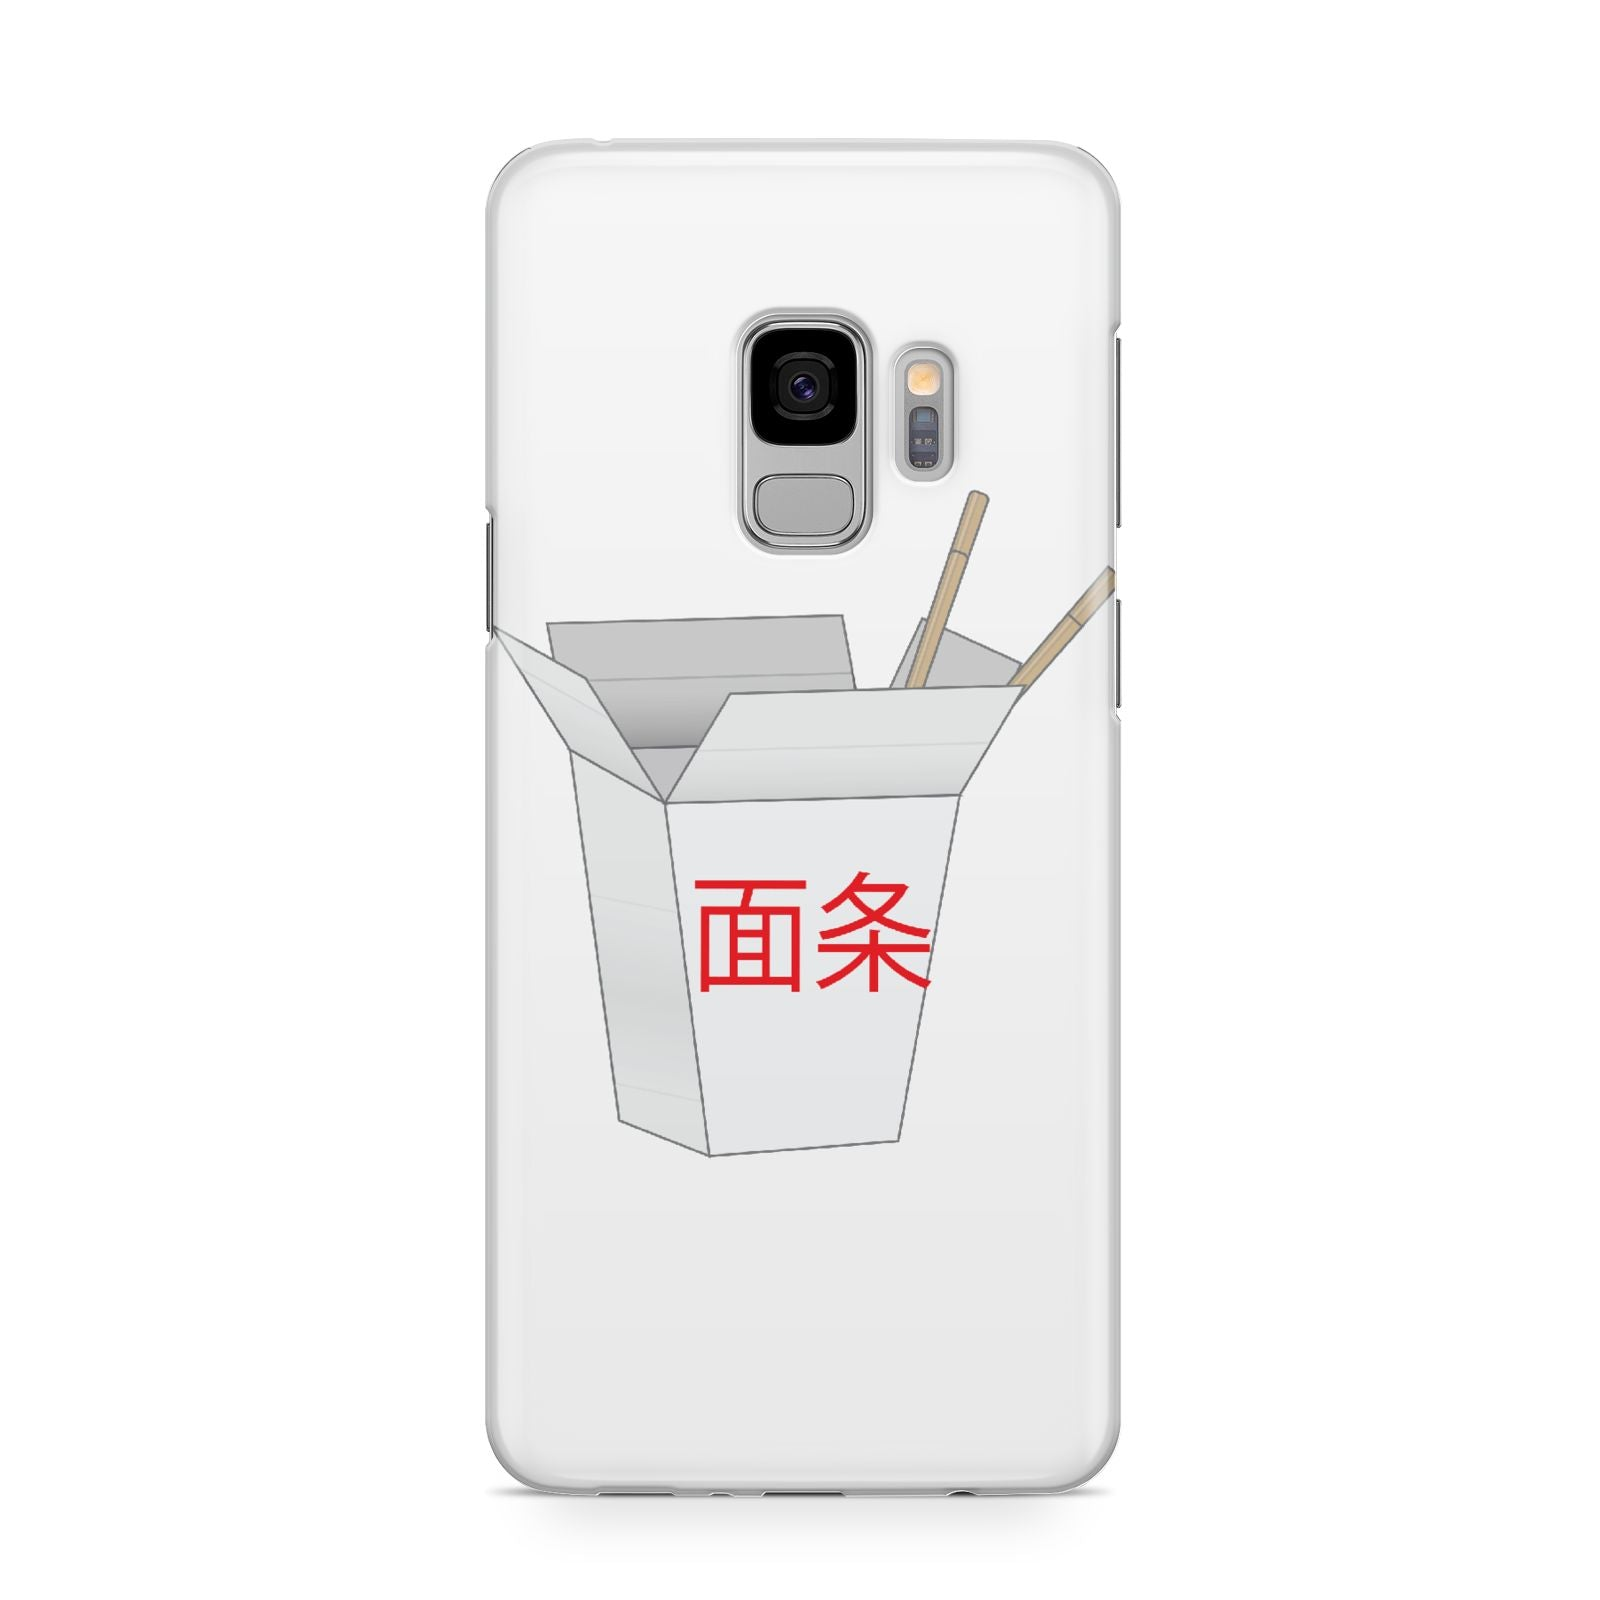 Chinese Takeaway Box Samsung Galaxy S9 Case